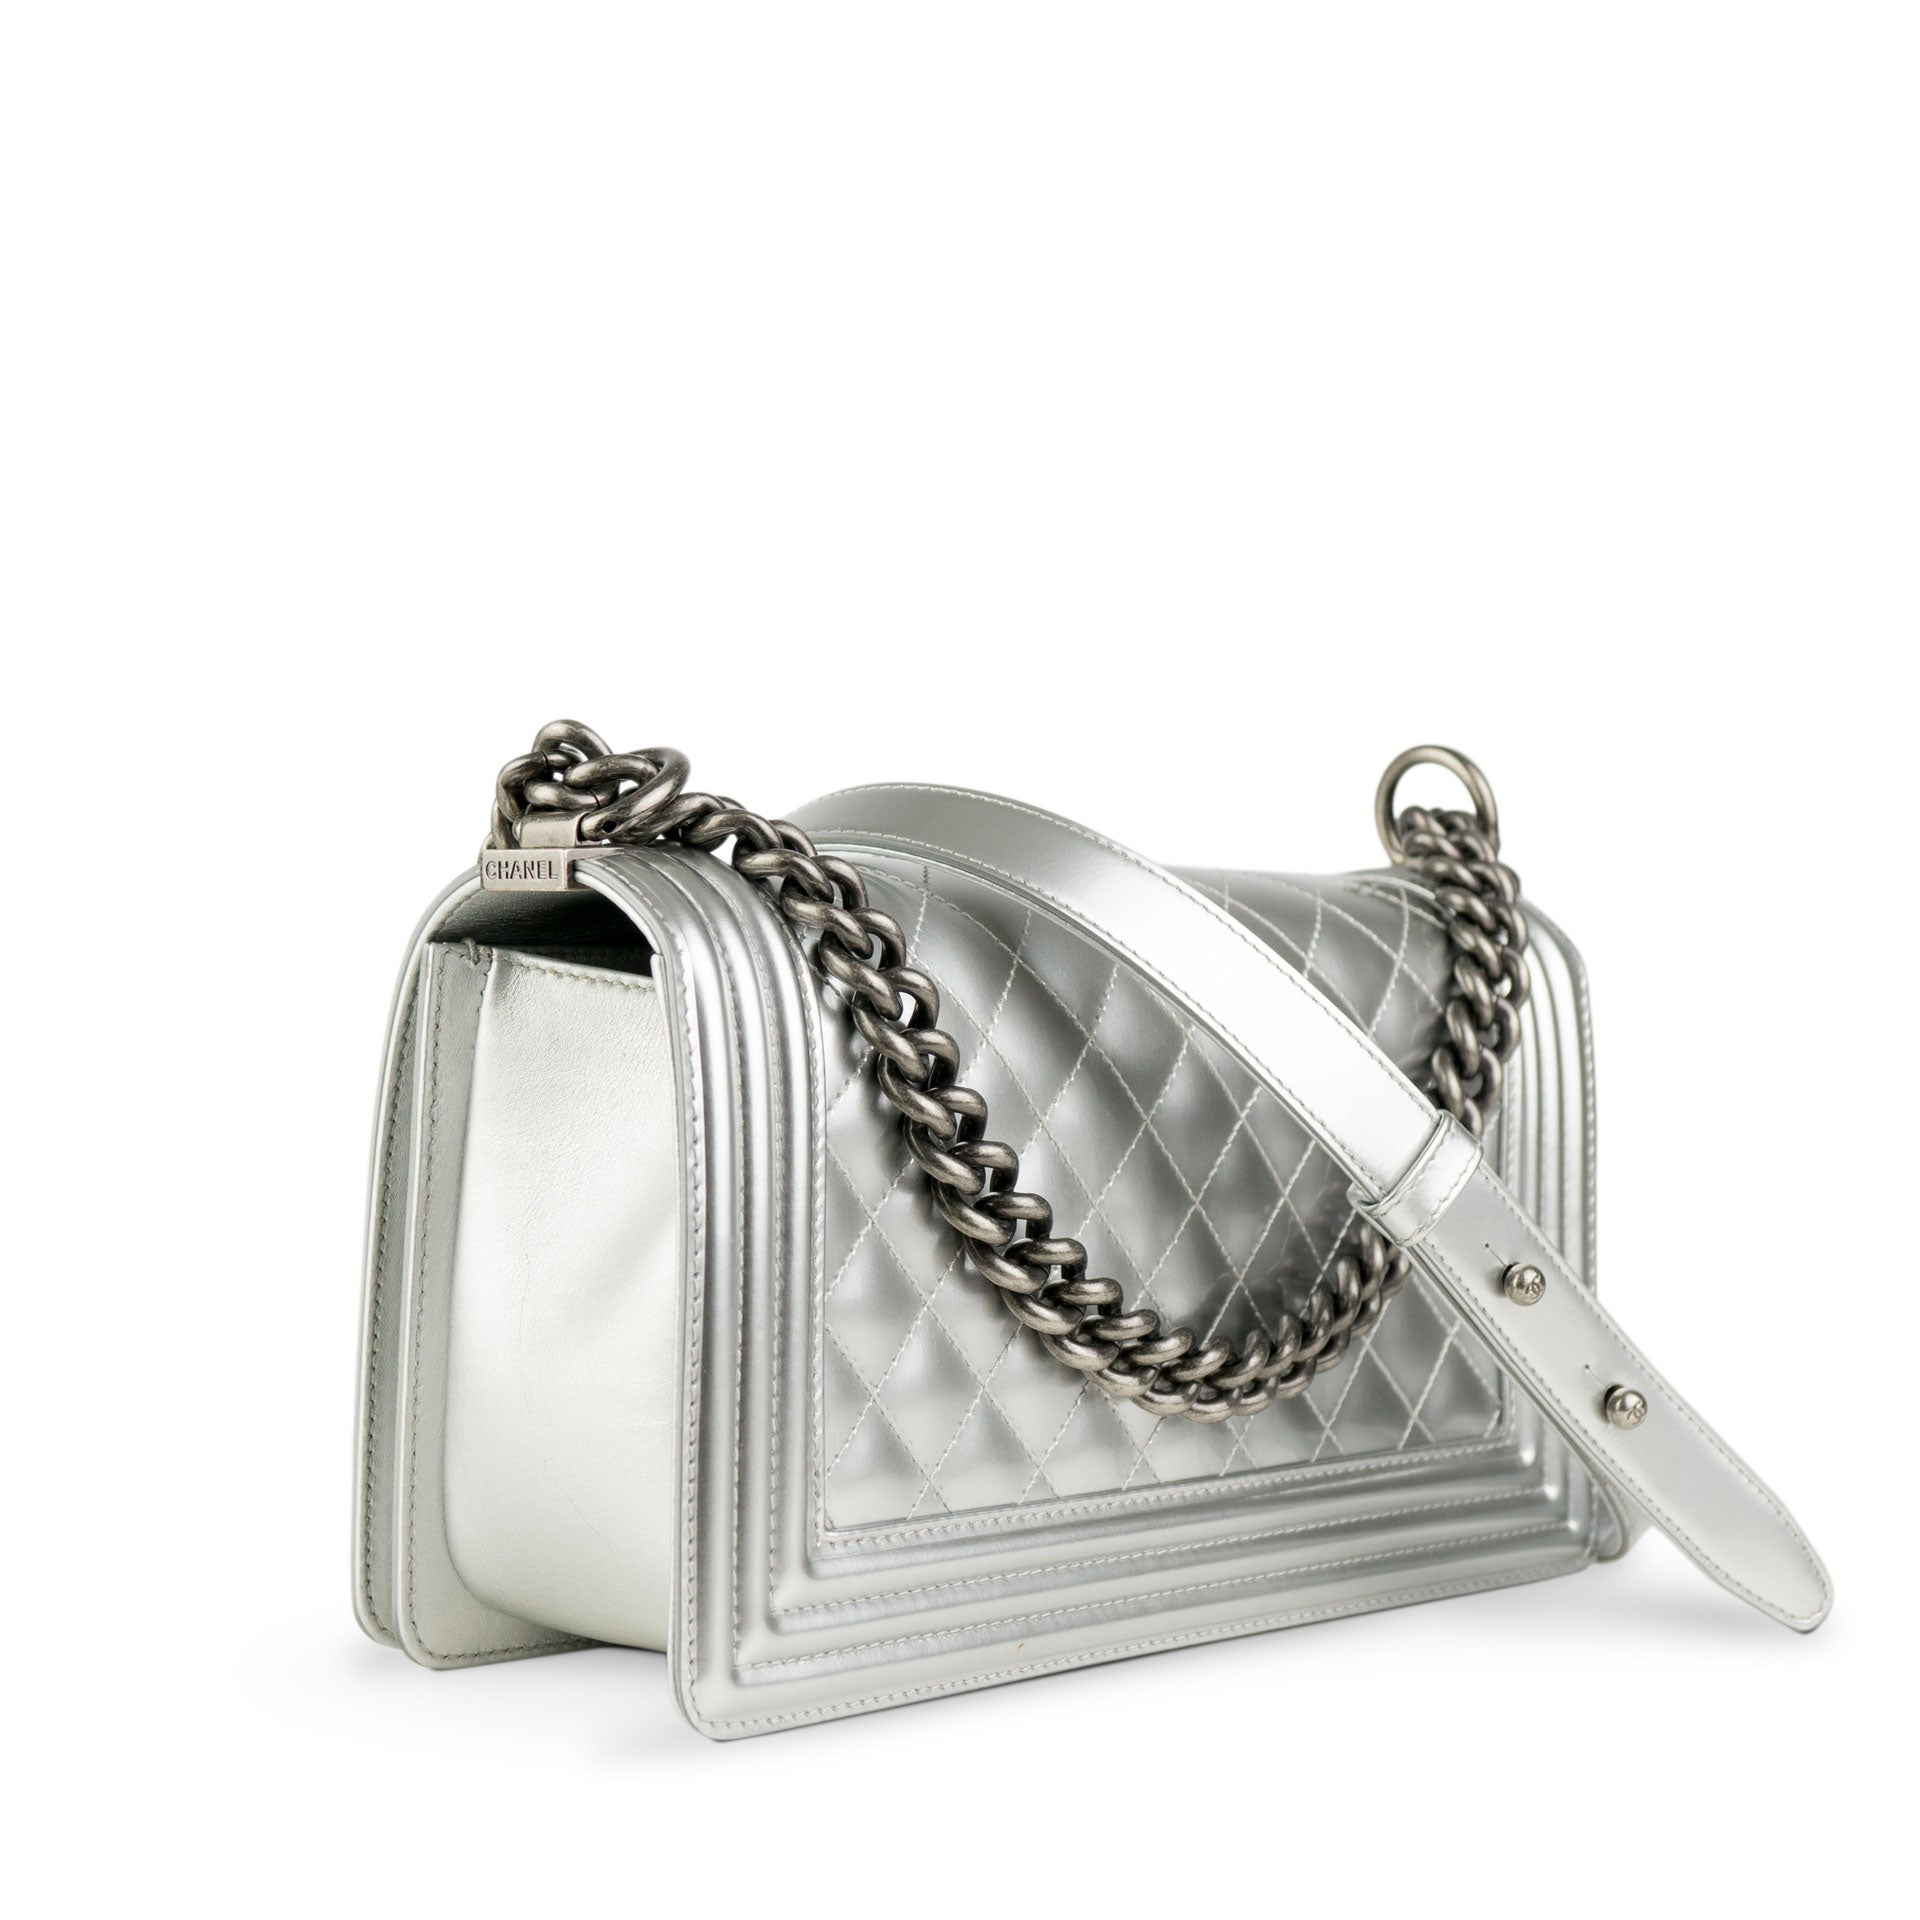 Chanel Silver Metallic Patent Boy Bag